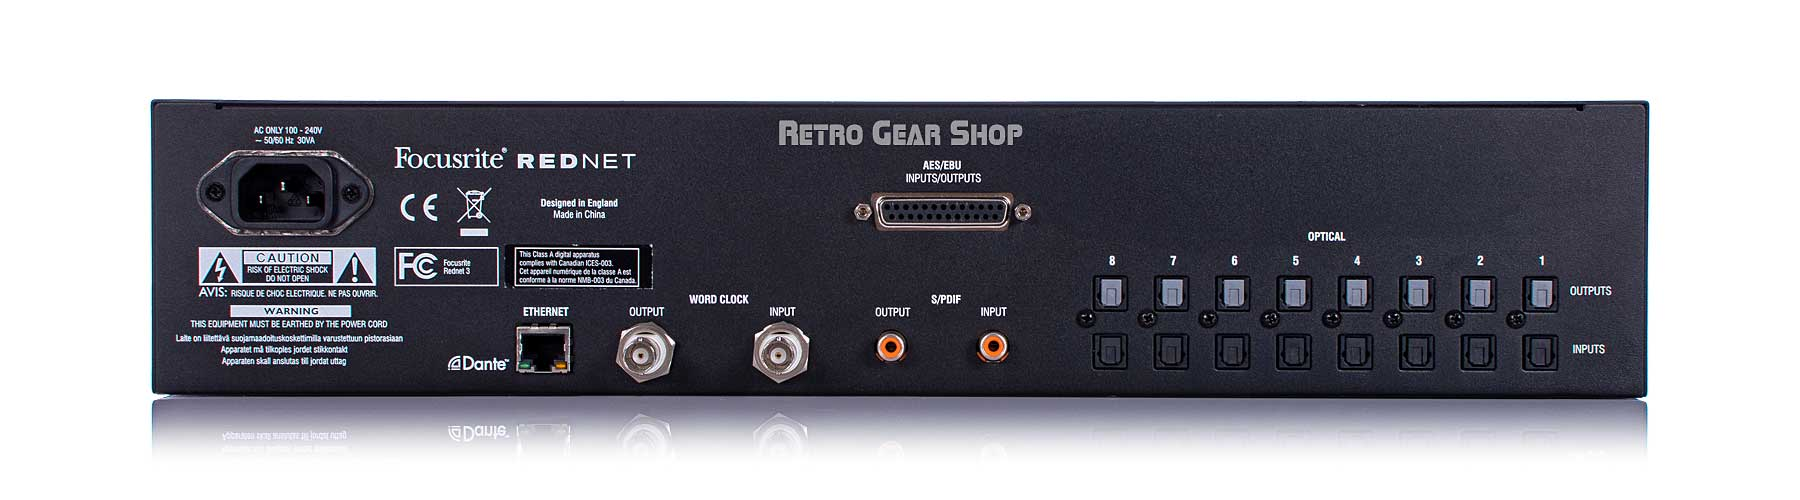 Focusrite Rednet 3 Rear